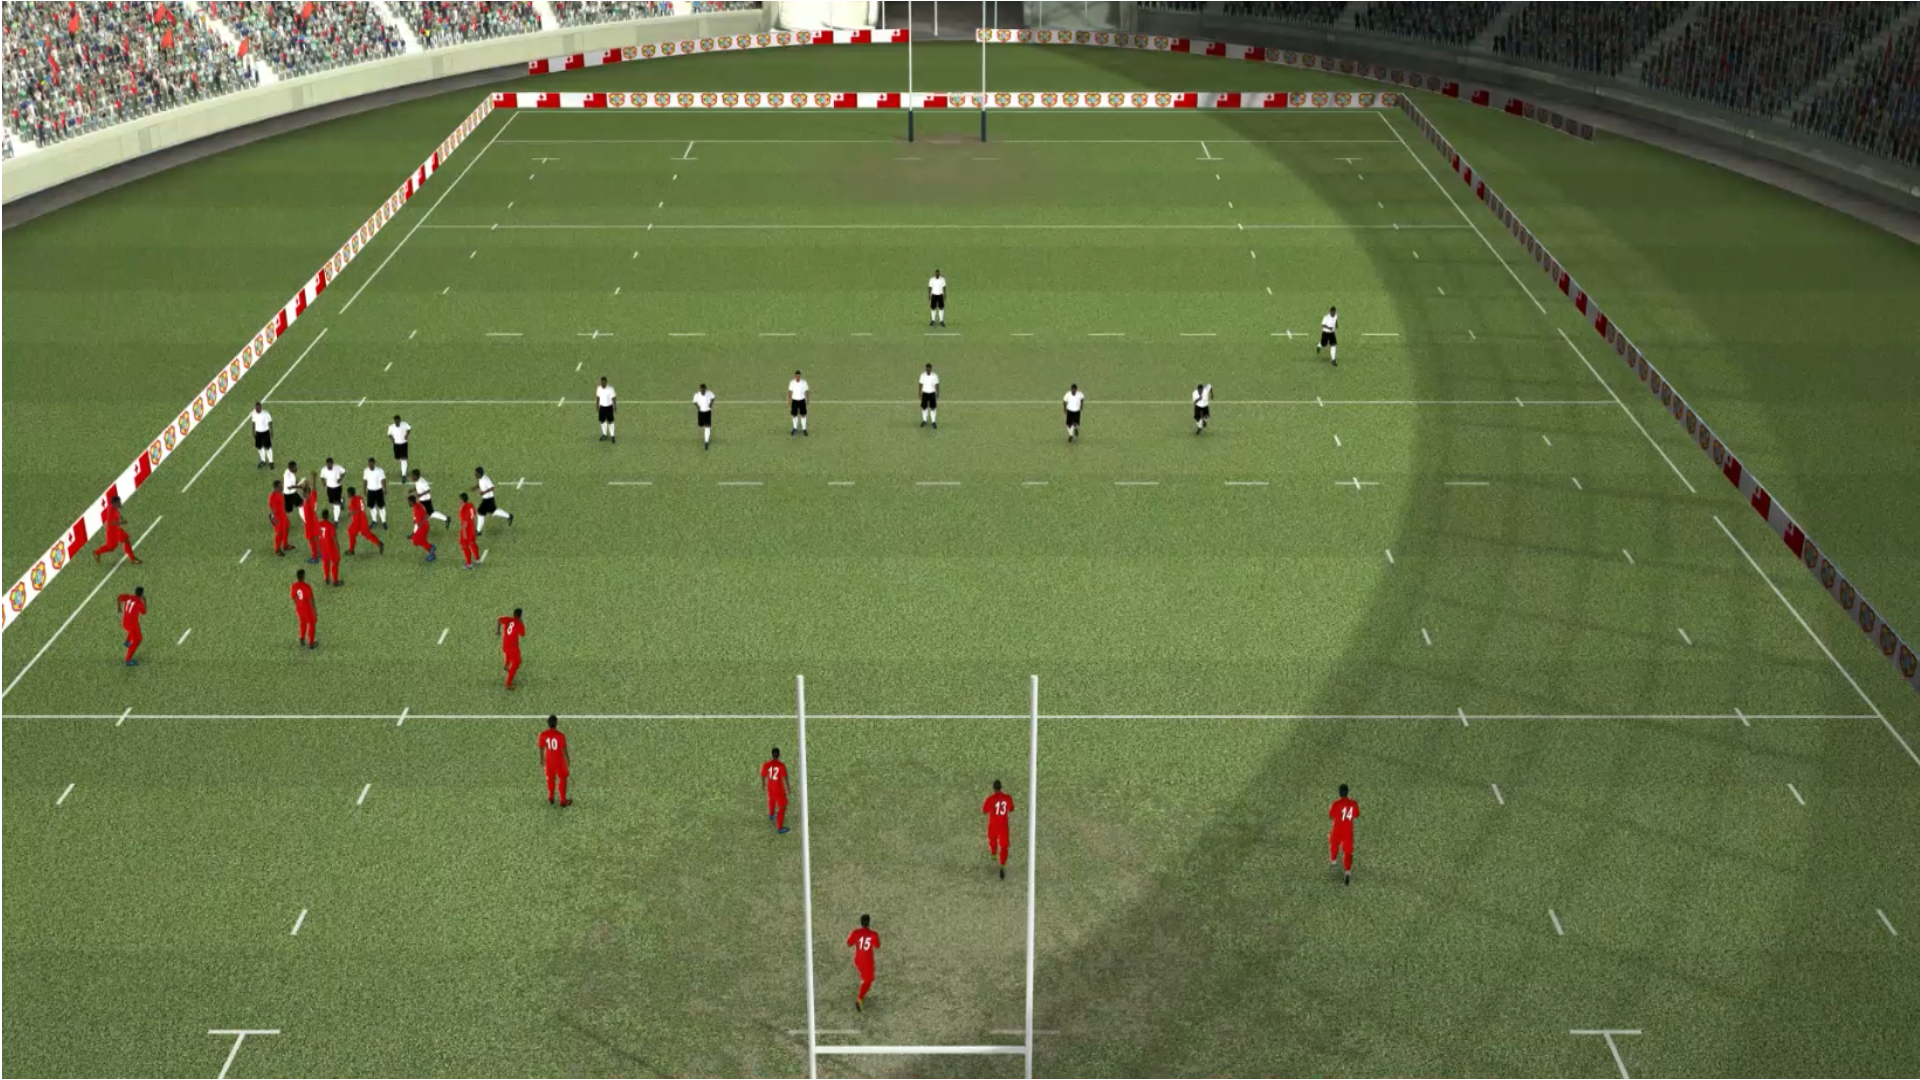 Virtual Cam - Sport Video Analysis